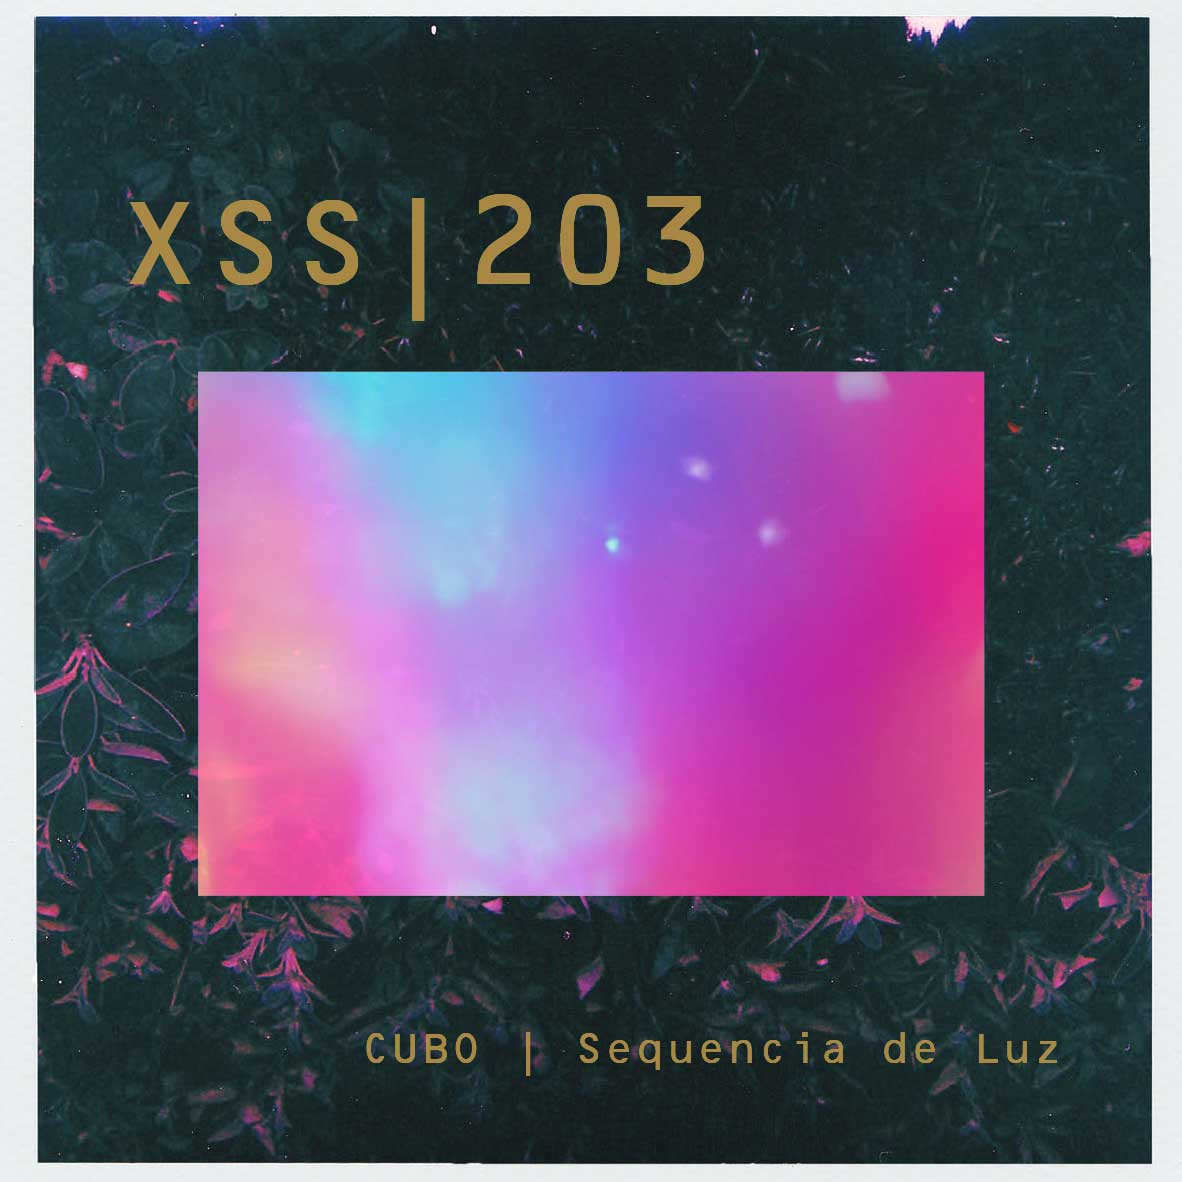 XSS203 | Cubo | Sequencia De Luz